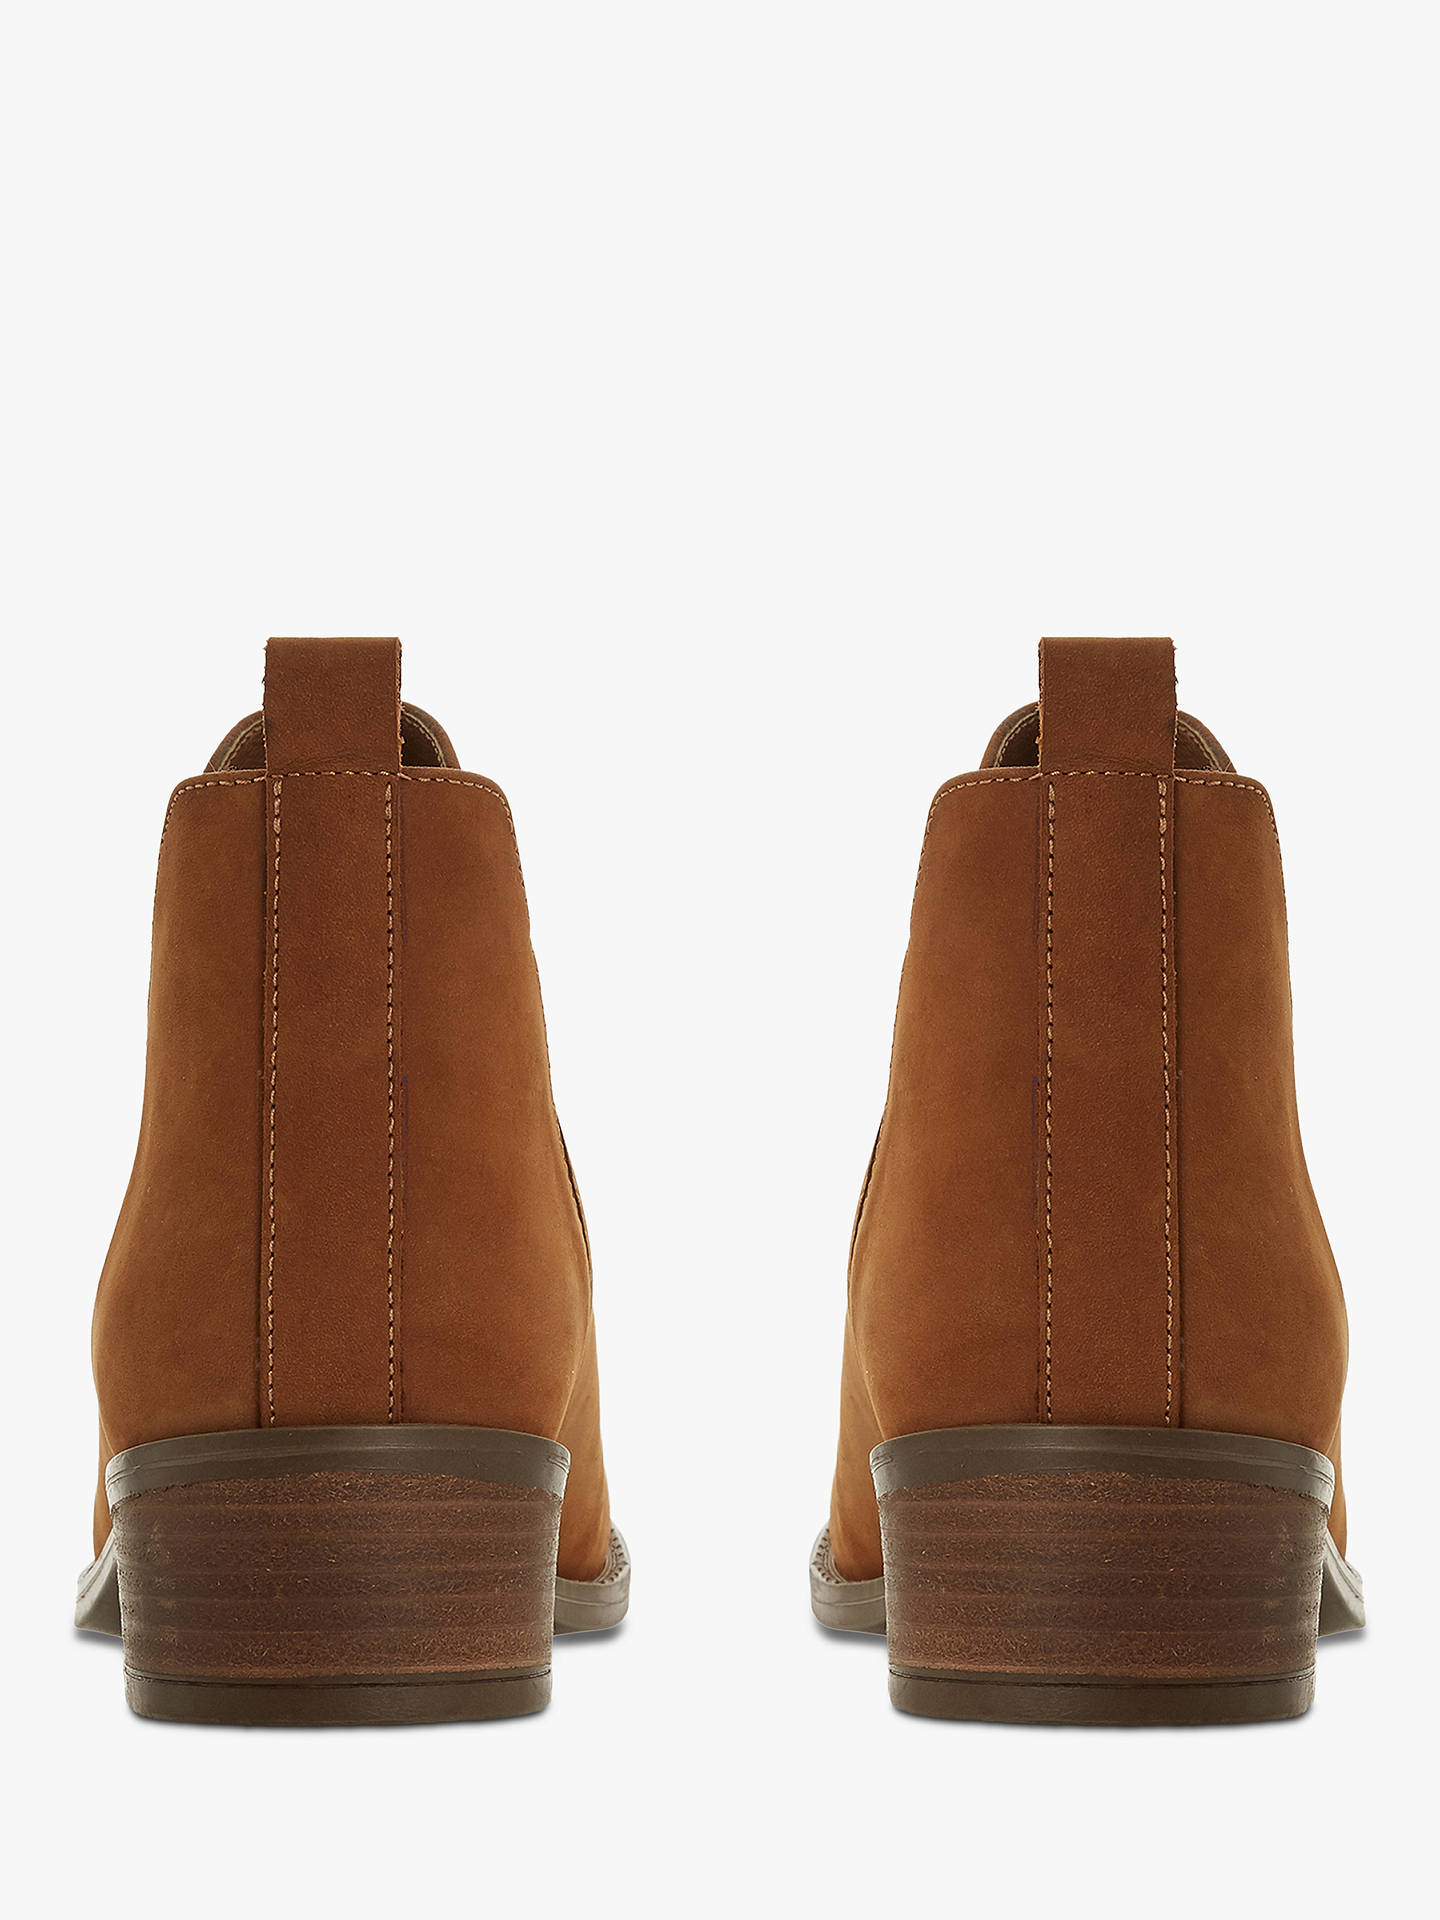 Buy Steve Madden Dante Block Heel Ankle Boots, Taupe Leather, 7 Online at johnlewis.com